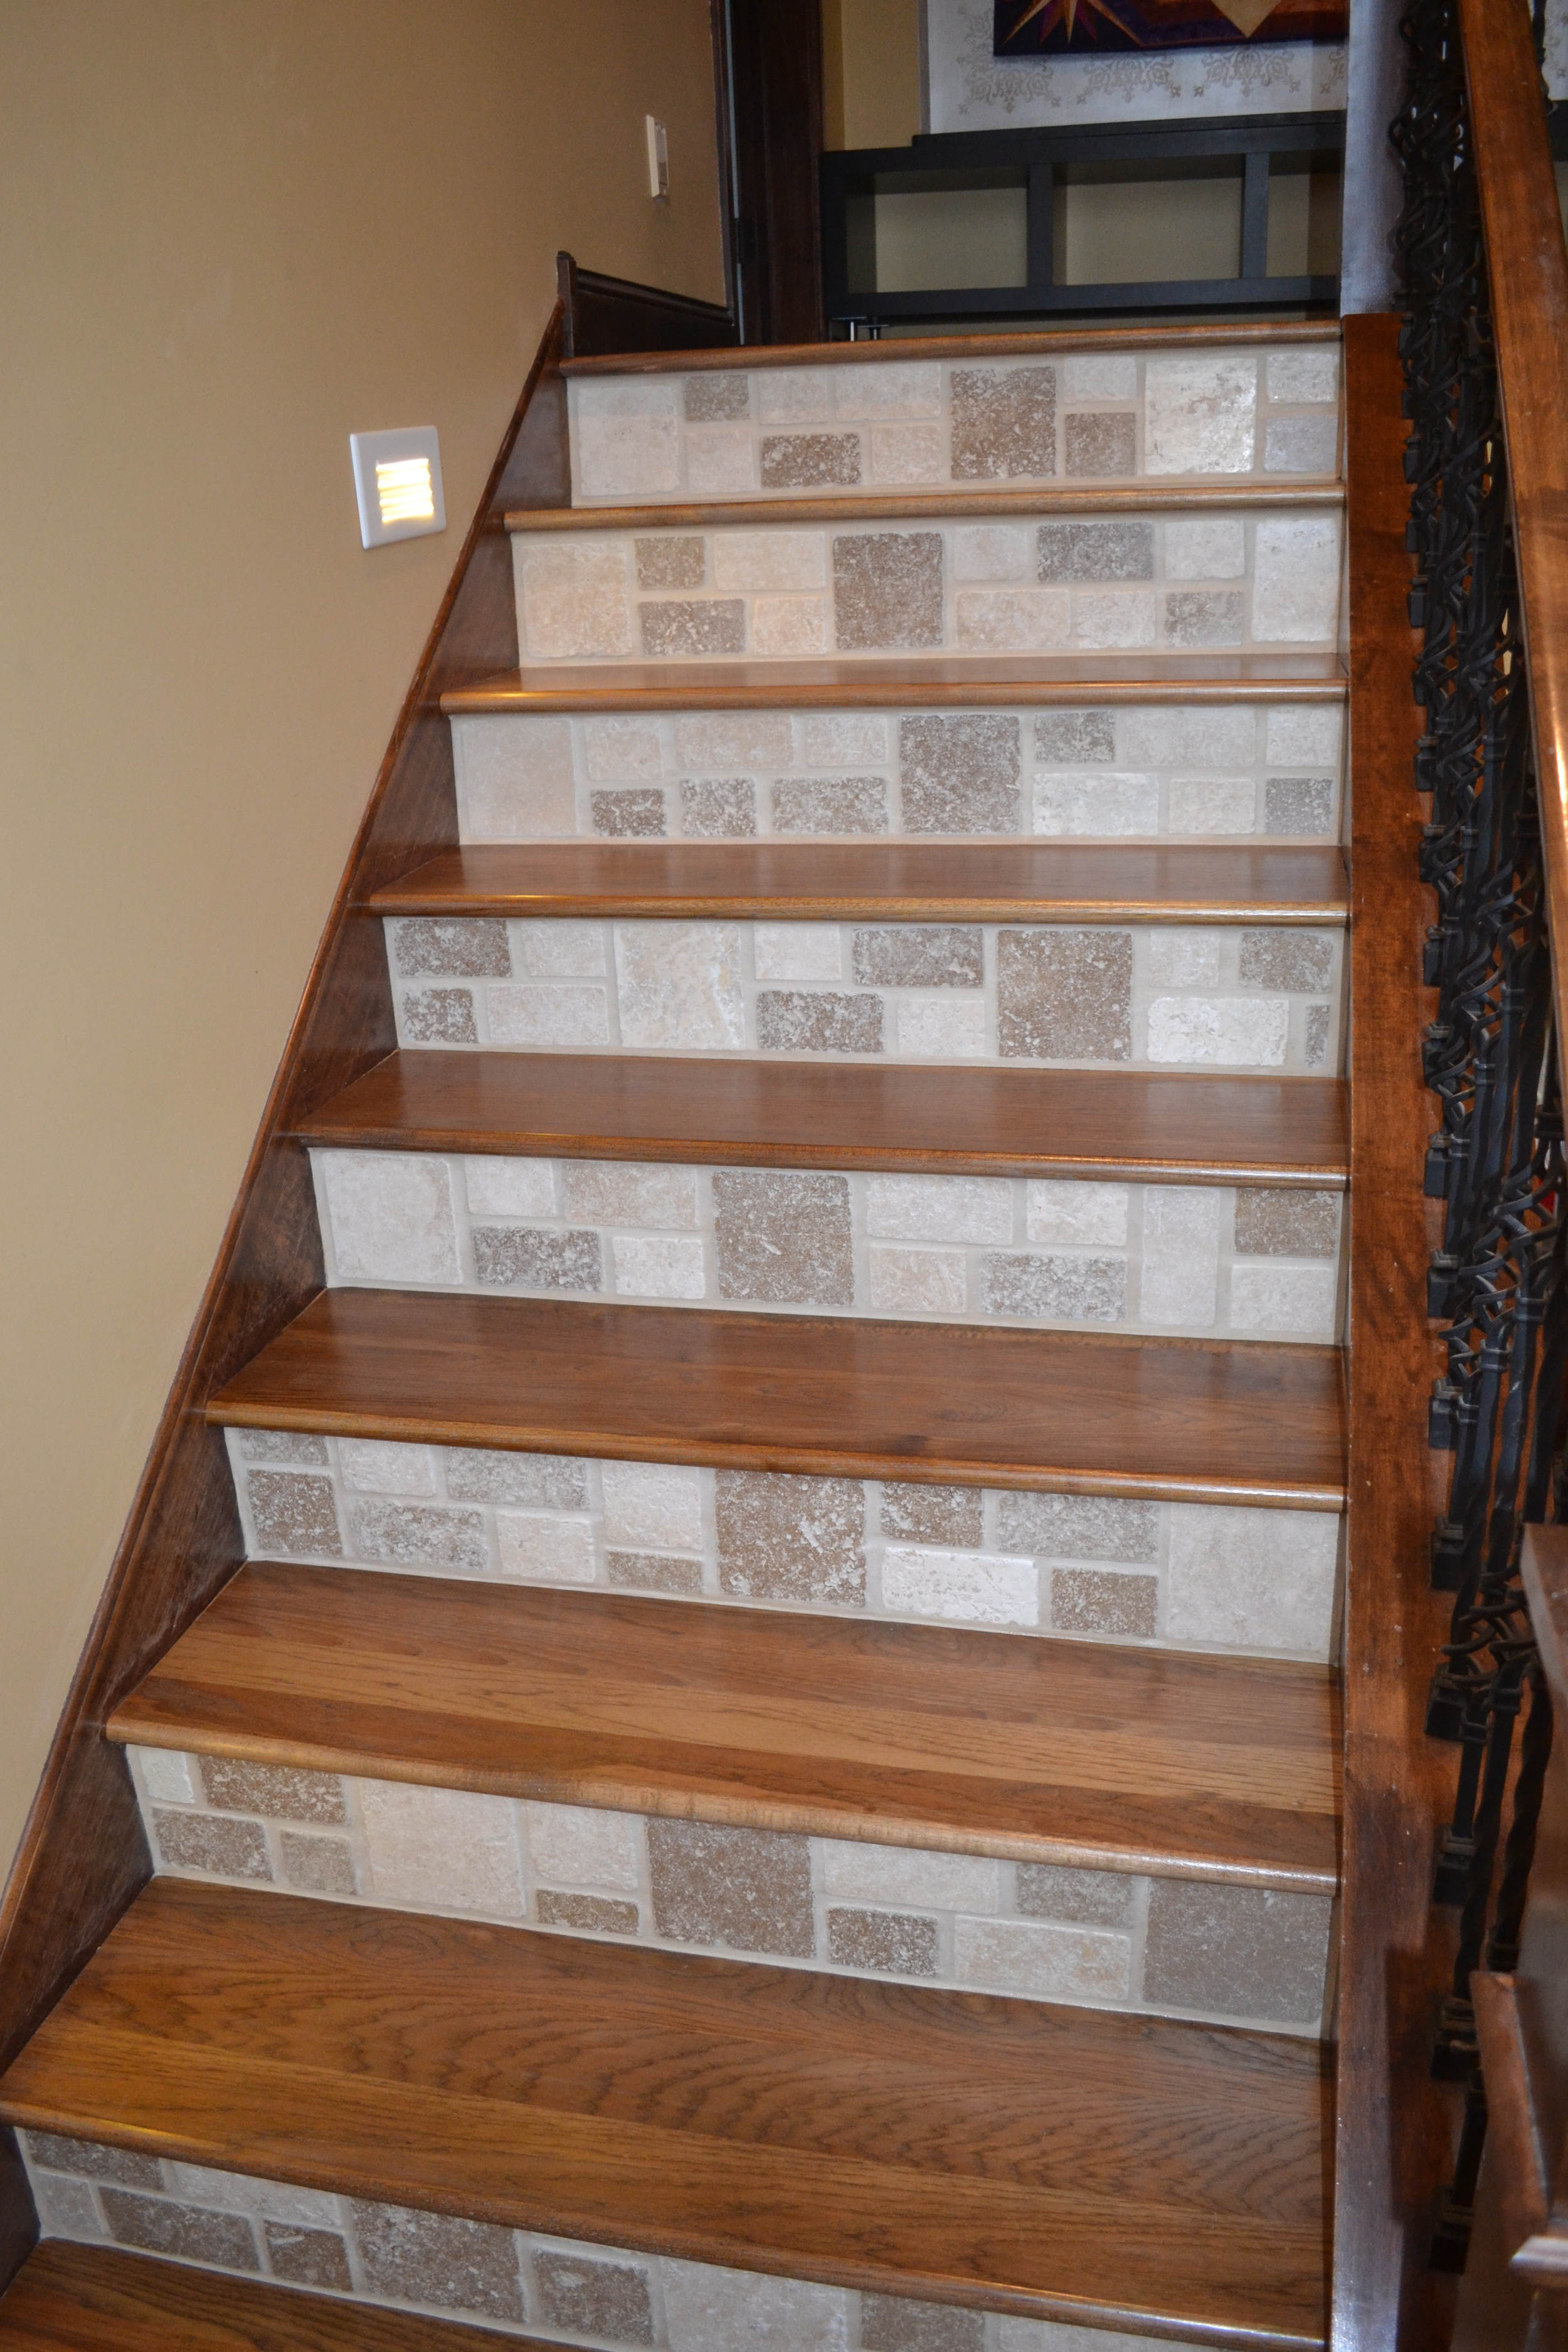 Wood treads and tile risers